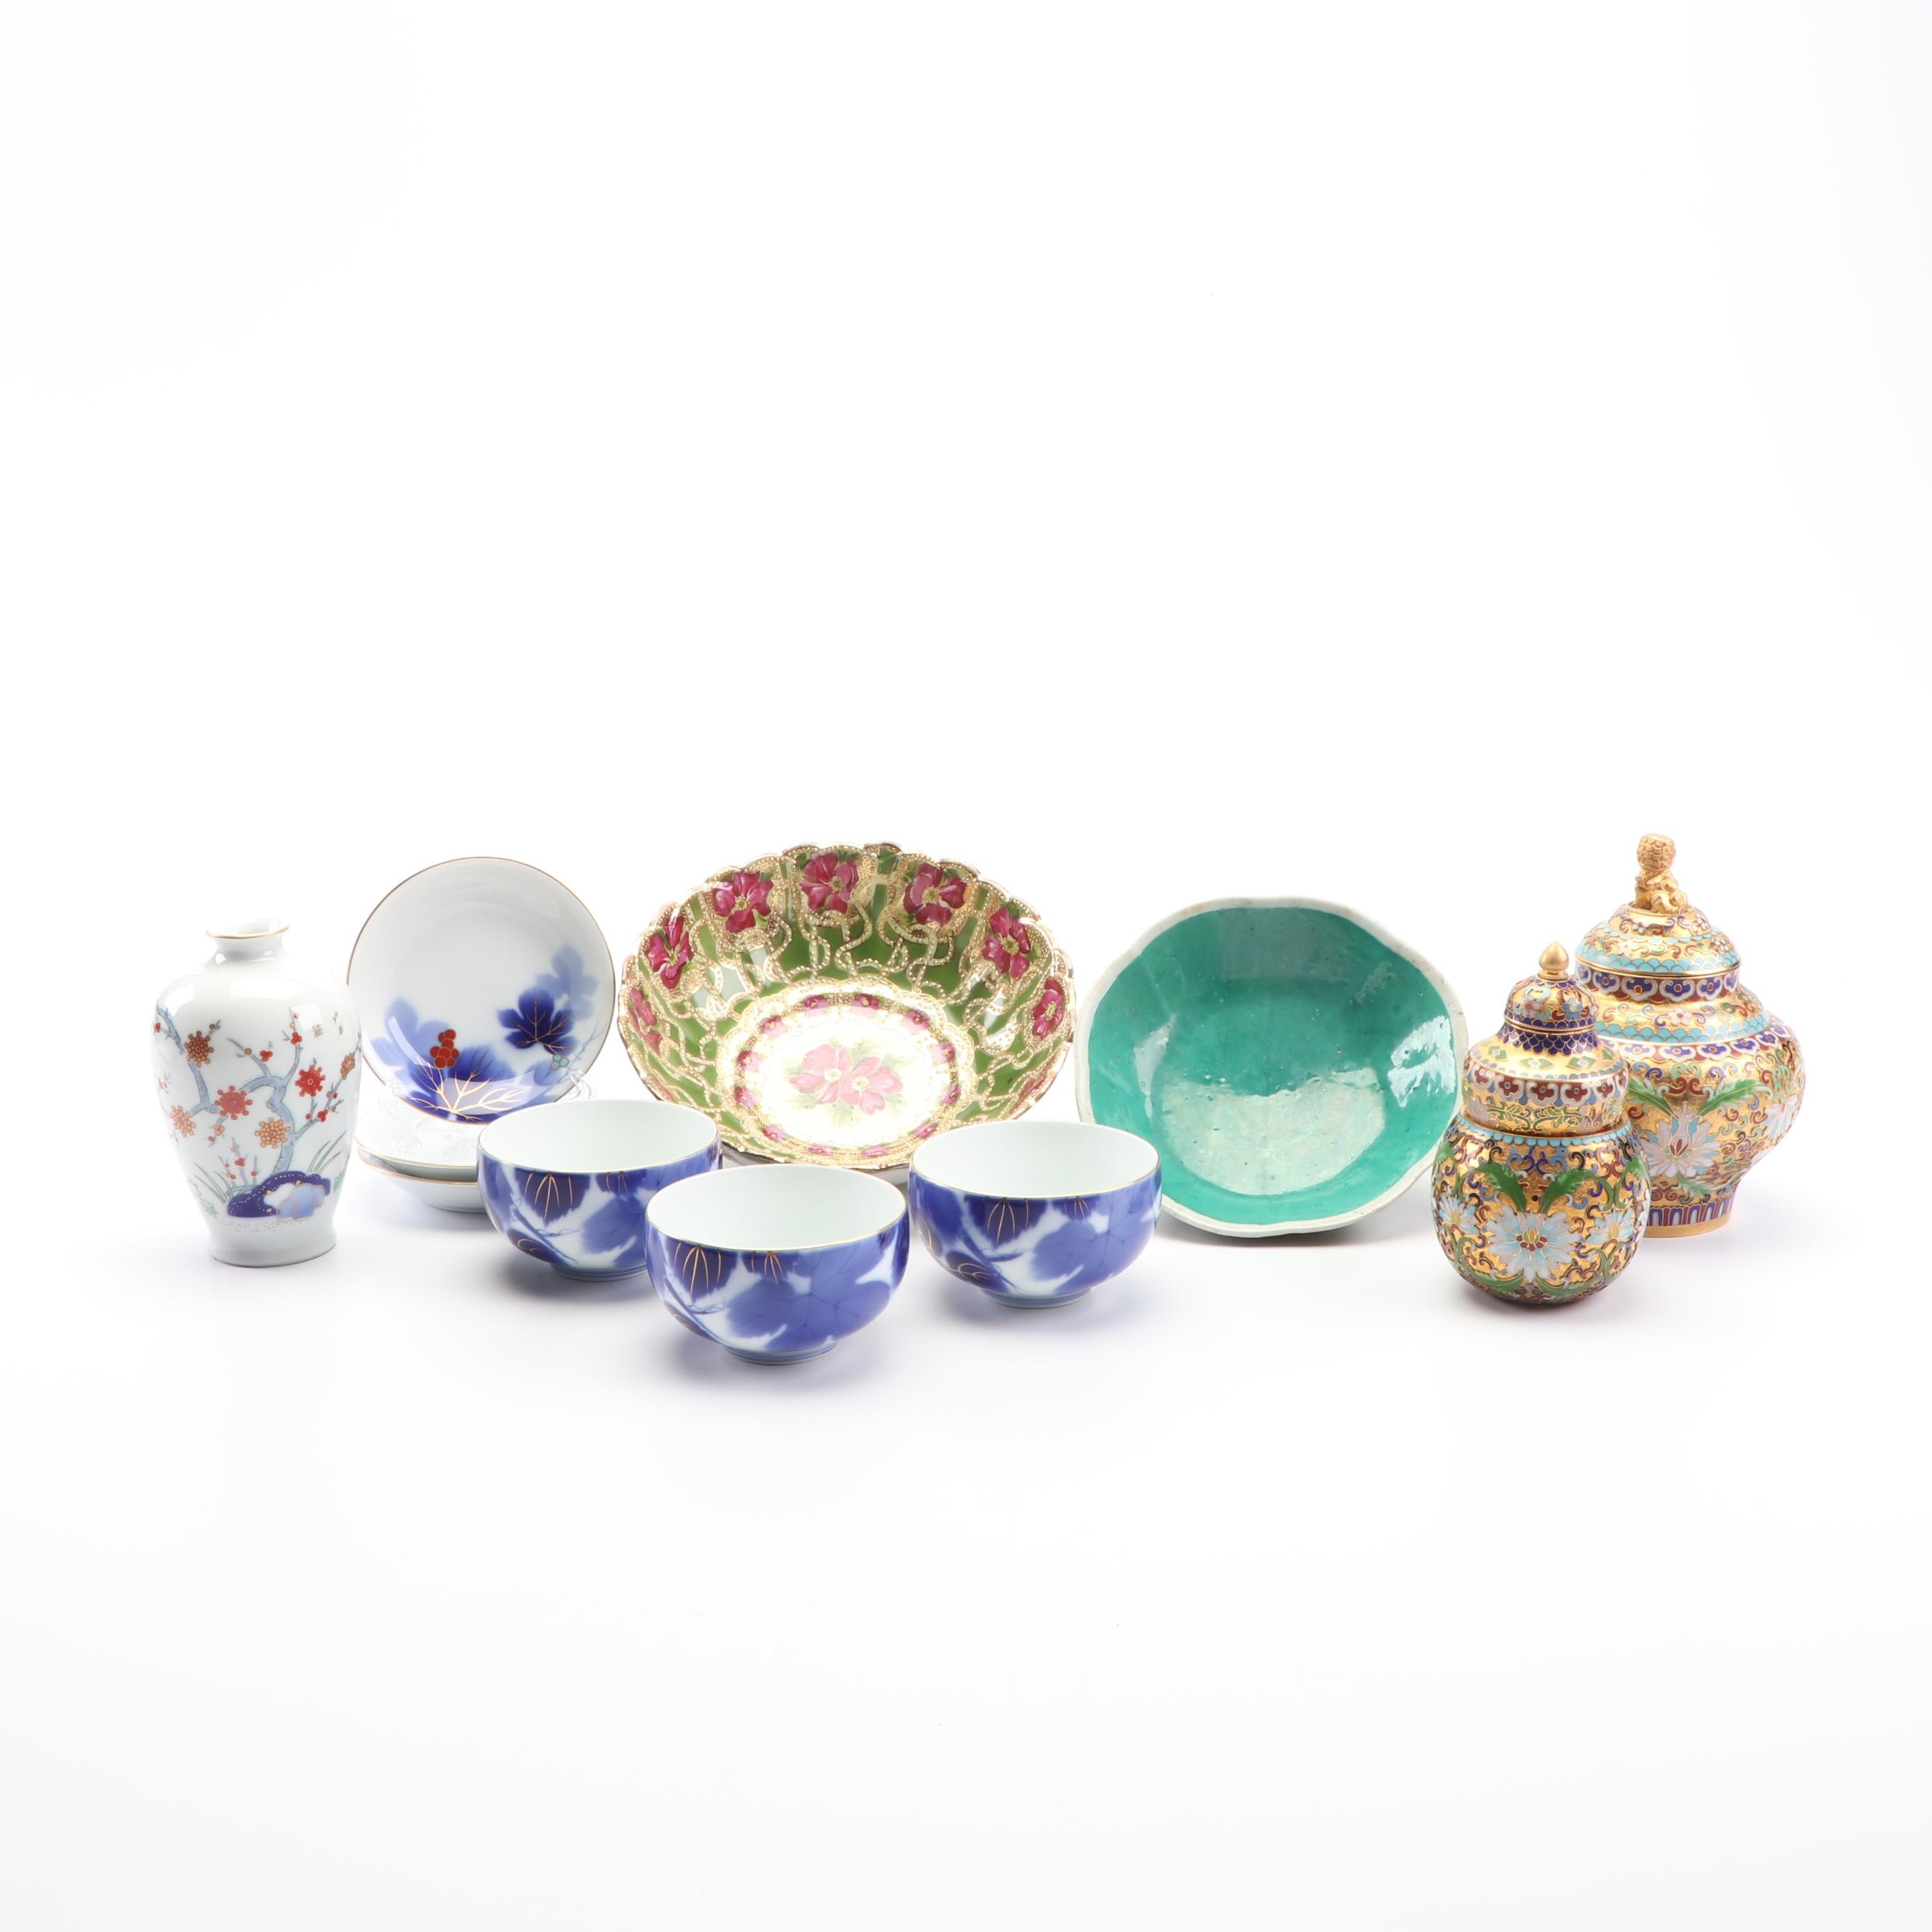 Chinese and Japanese Tableware with Cloisonné Jars